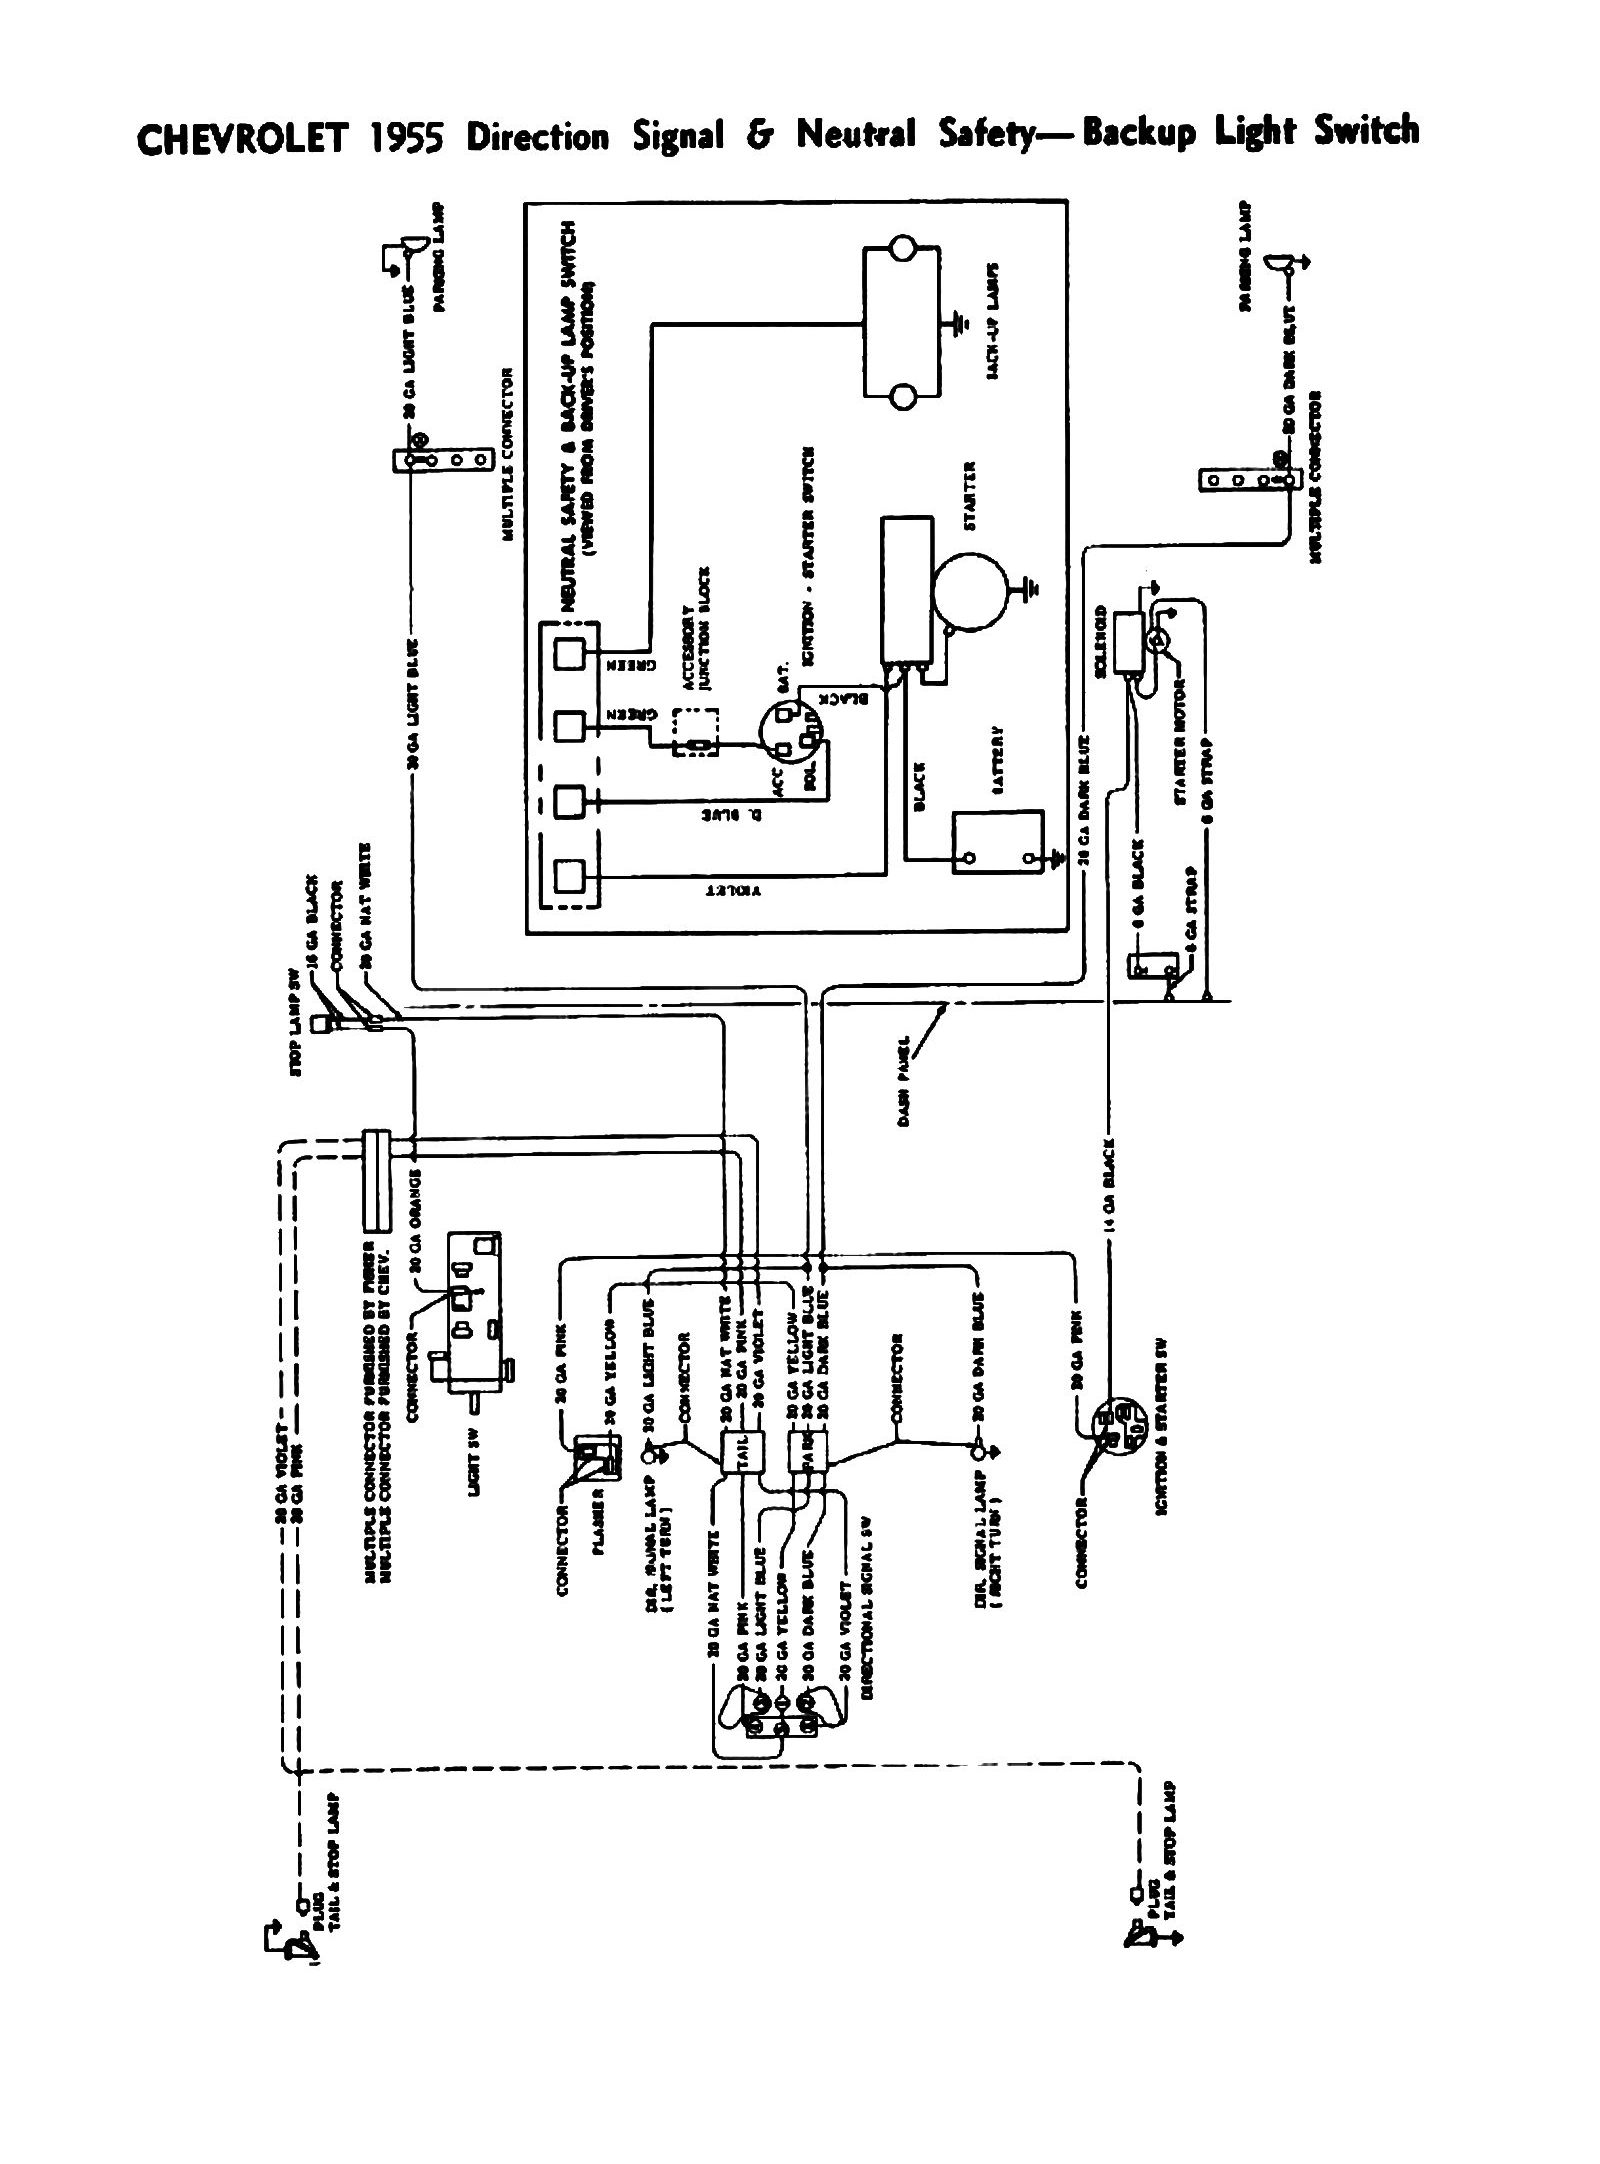 Gm Accessory Relay Wiring Question About Diagram 1947 Chevy Wire Todays Rh 6 9 1813weddingbarn Com Basic Electrical Relays Horn